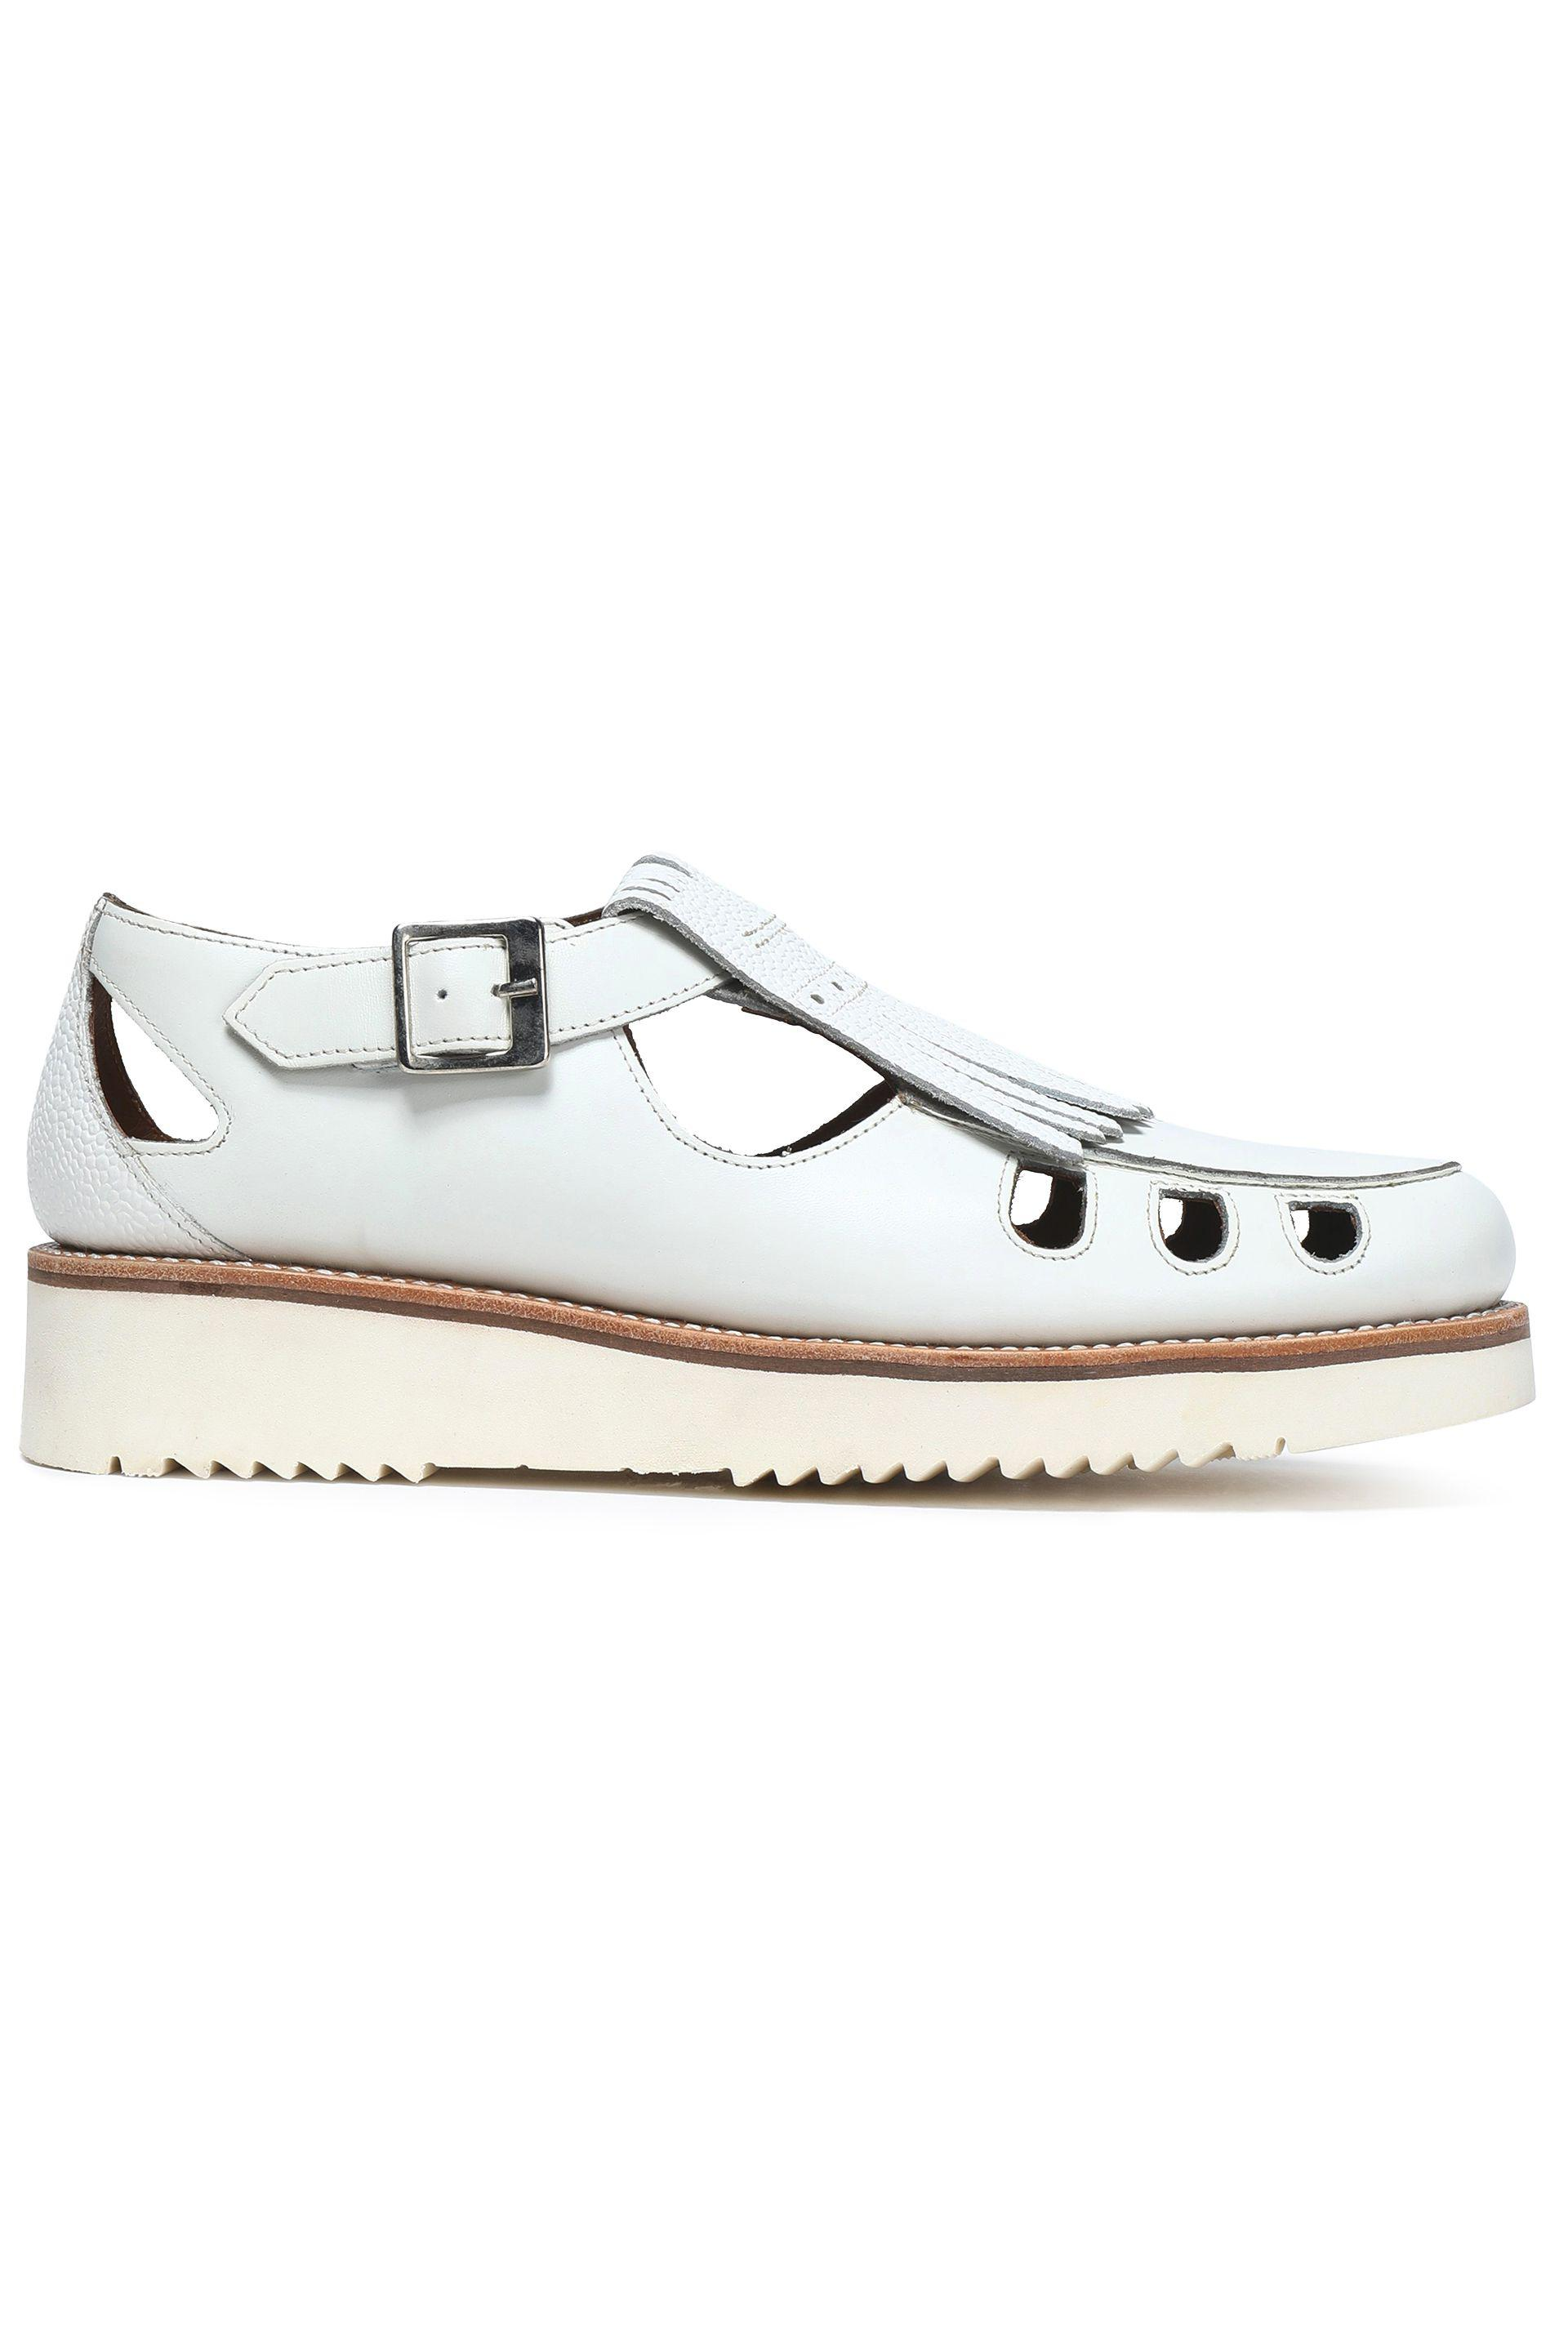 94fd76466b4 Grenson Woman Fringed Cutout Leather Loafers White in White - Lyst